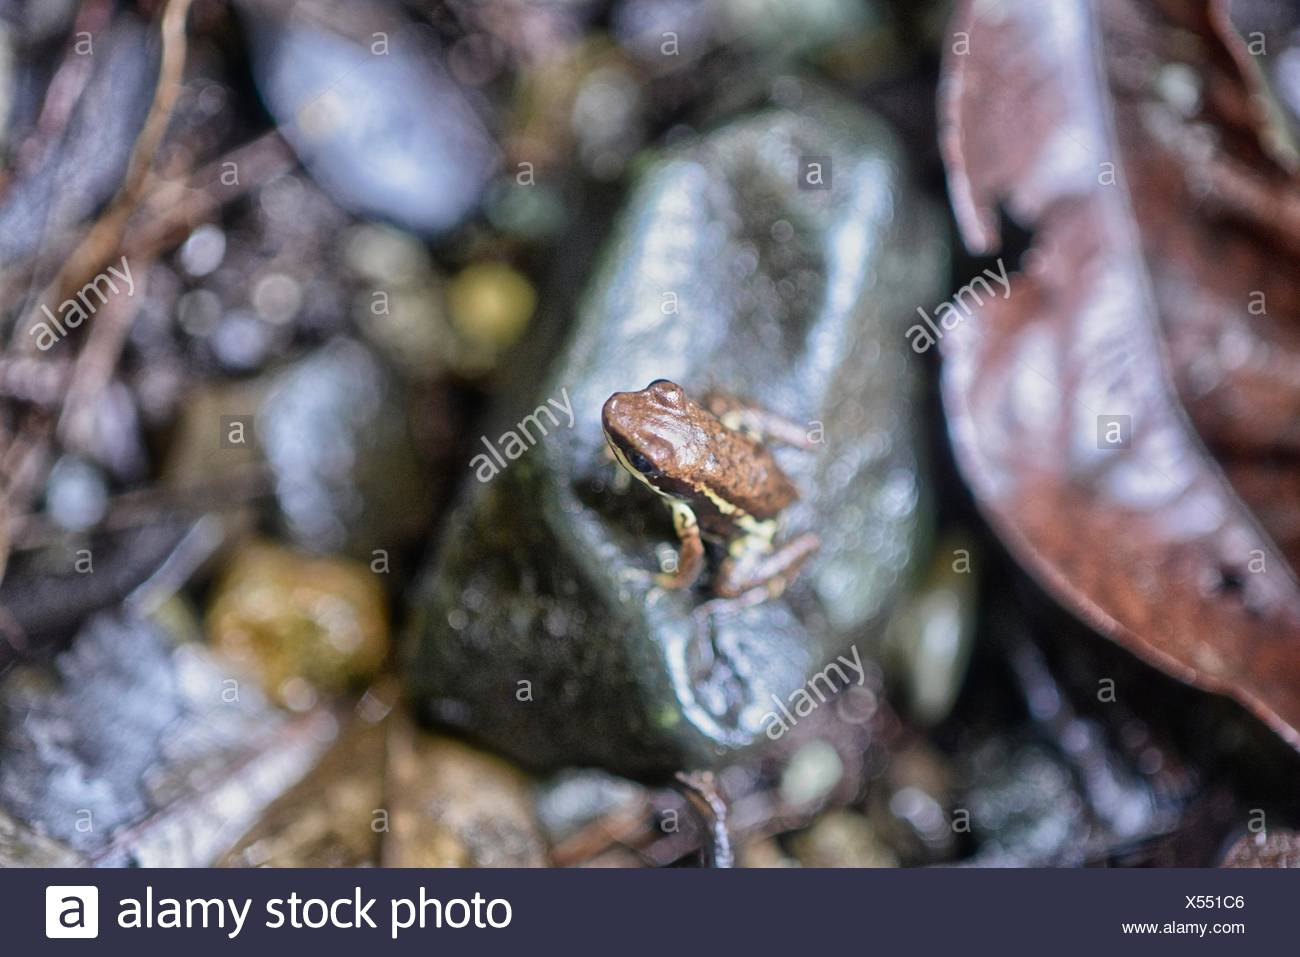 High angle view of frog resting on a rock. - Stock Image